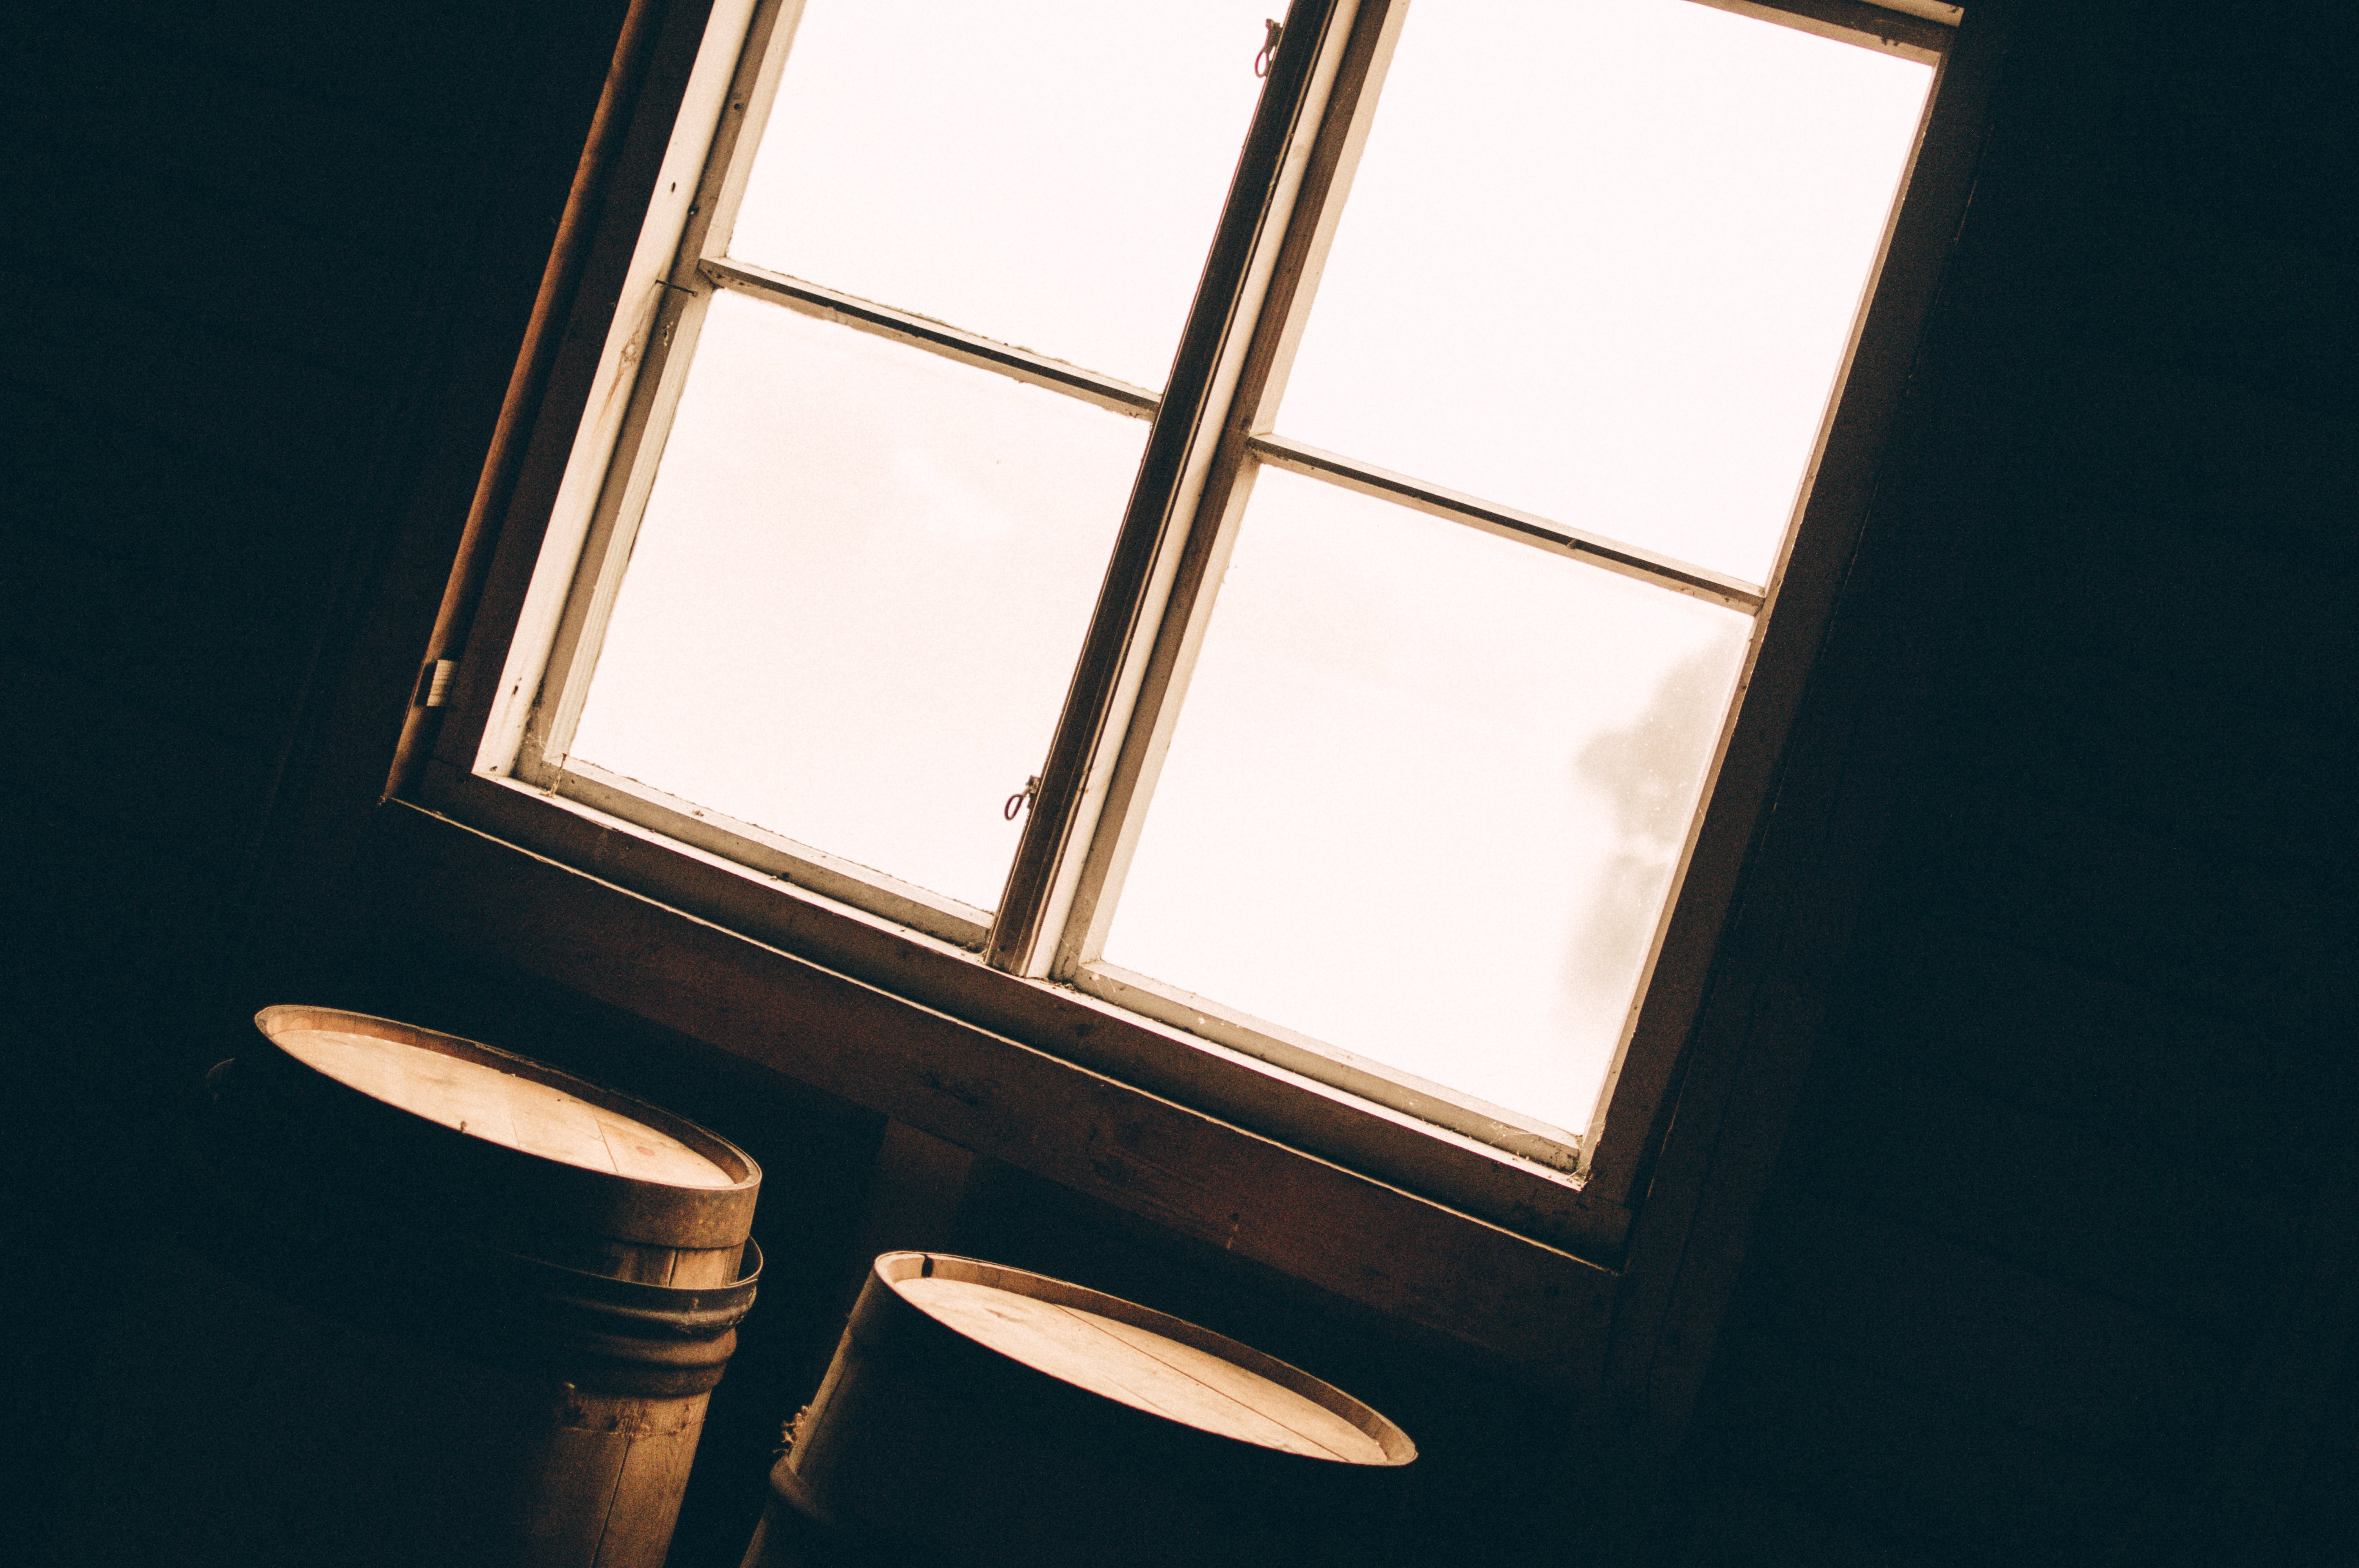 Free stock photo of light, dark, house, glass